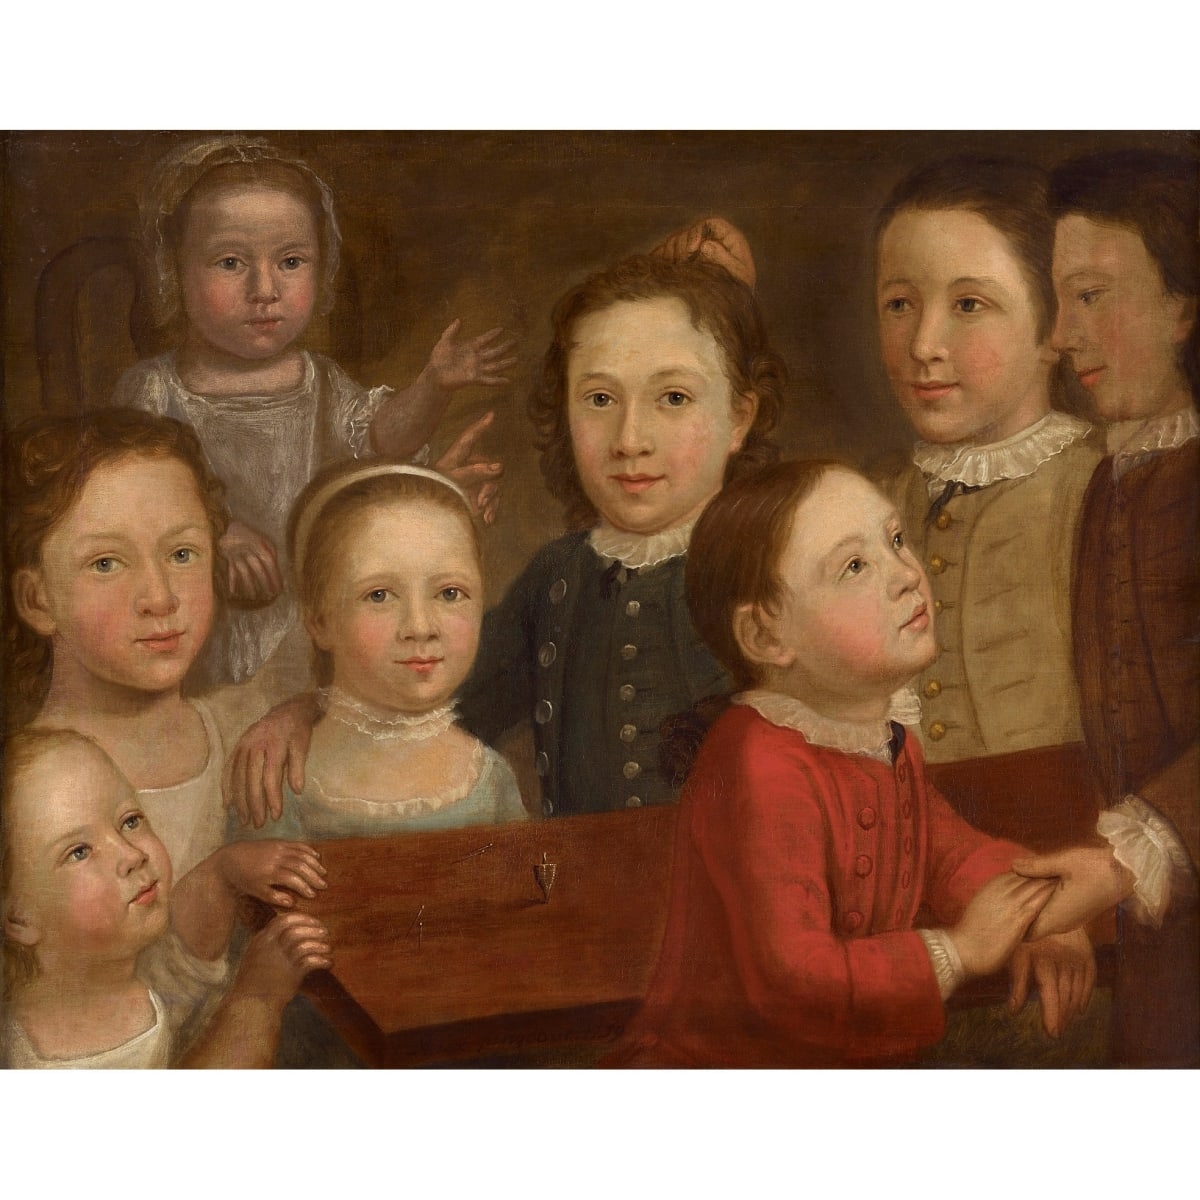 Cosmo Alexander A Group of Children, 1759 signed with monogram and dated 1759 oil on canvas 26 ¾ x 33 ½ inches